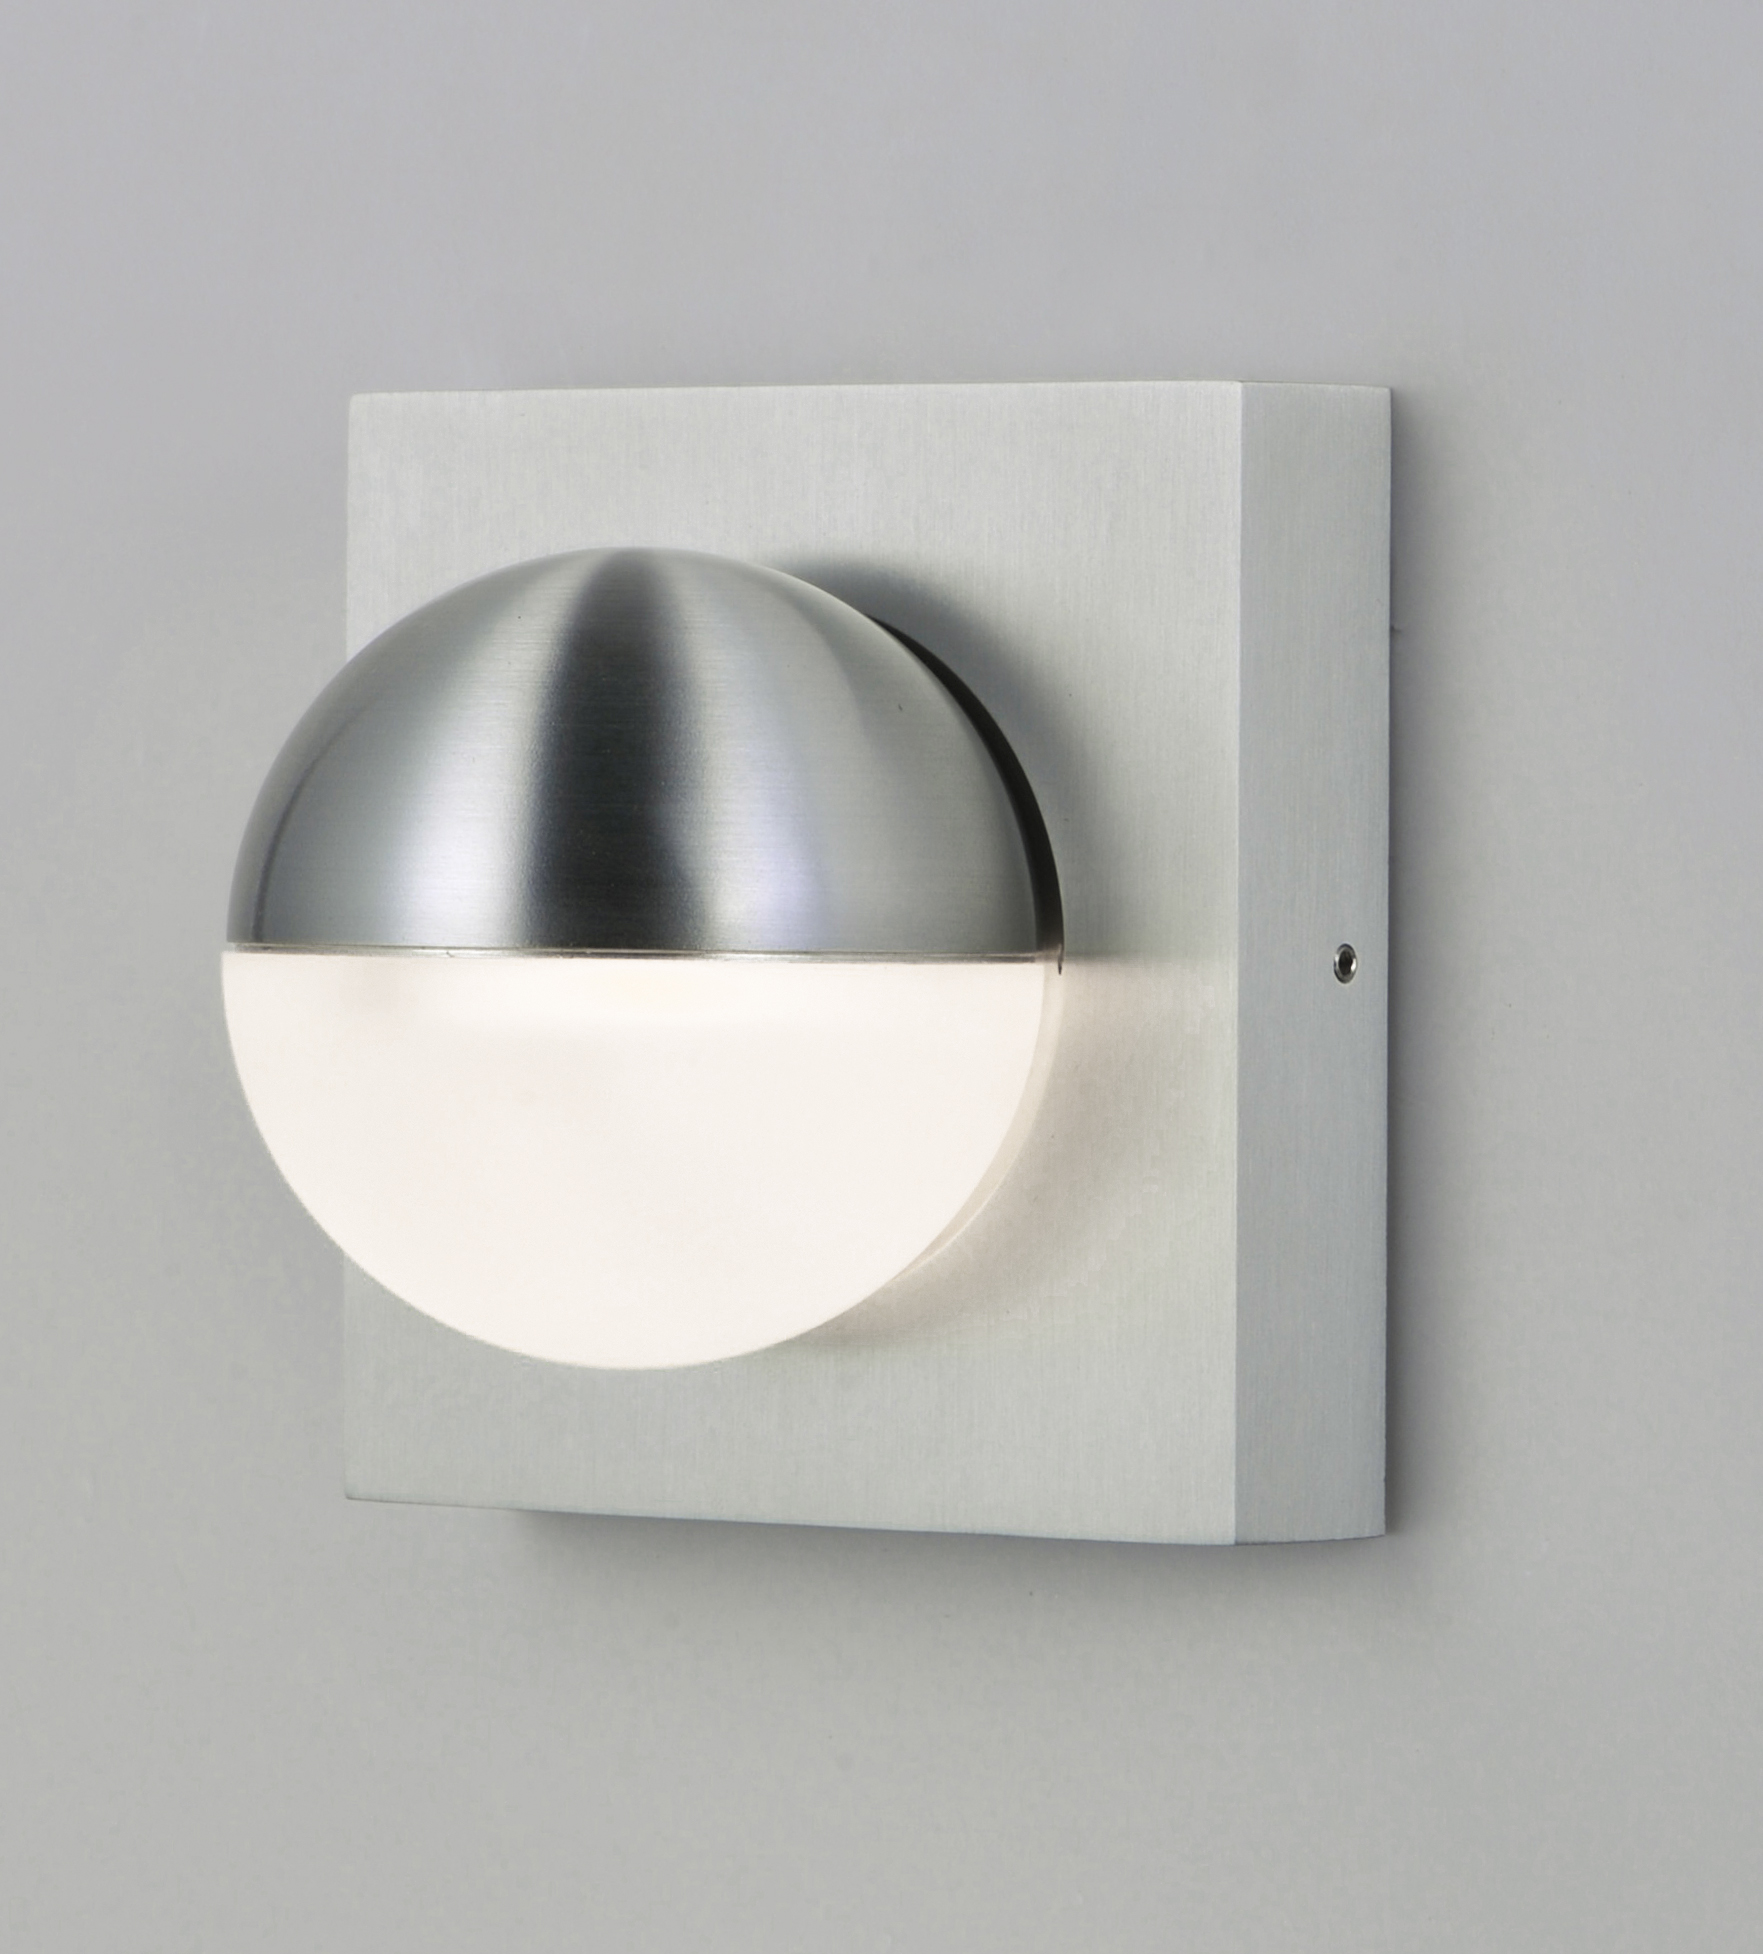 Alumilux LED Wall Sconce | Wall | ET2 Online on Wall Sconce Replacement Parts id=54185